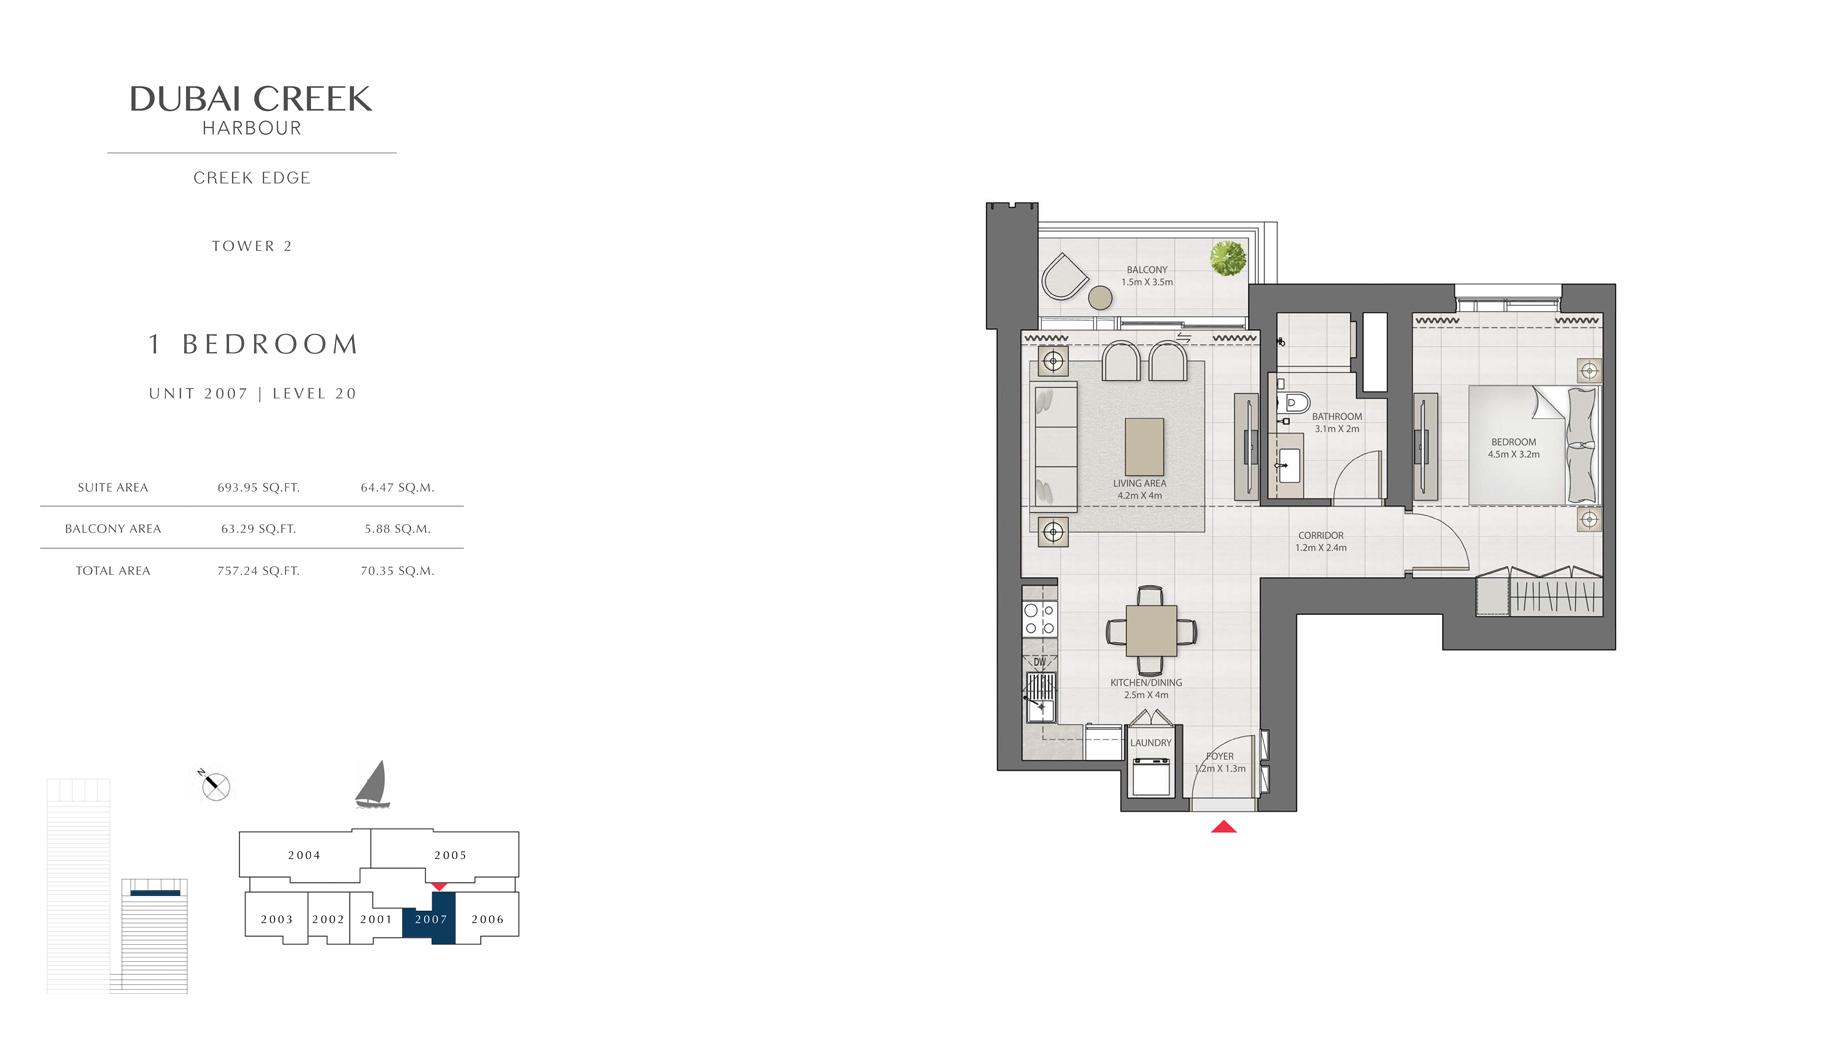 1 Bedroom Tower 2 Unit 2007 Level 20 Size 757 sq.ft